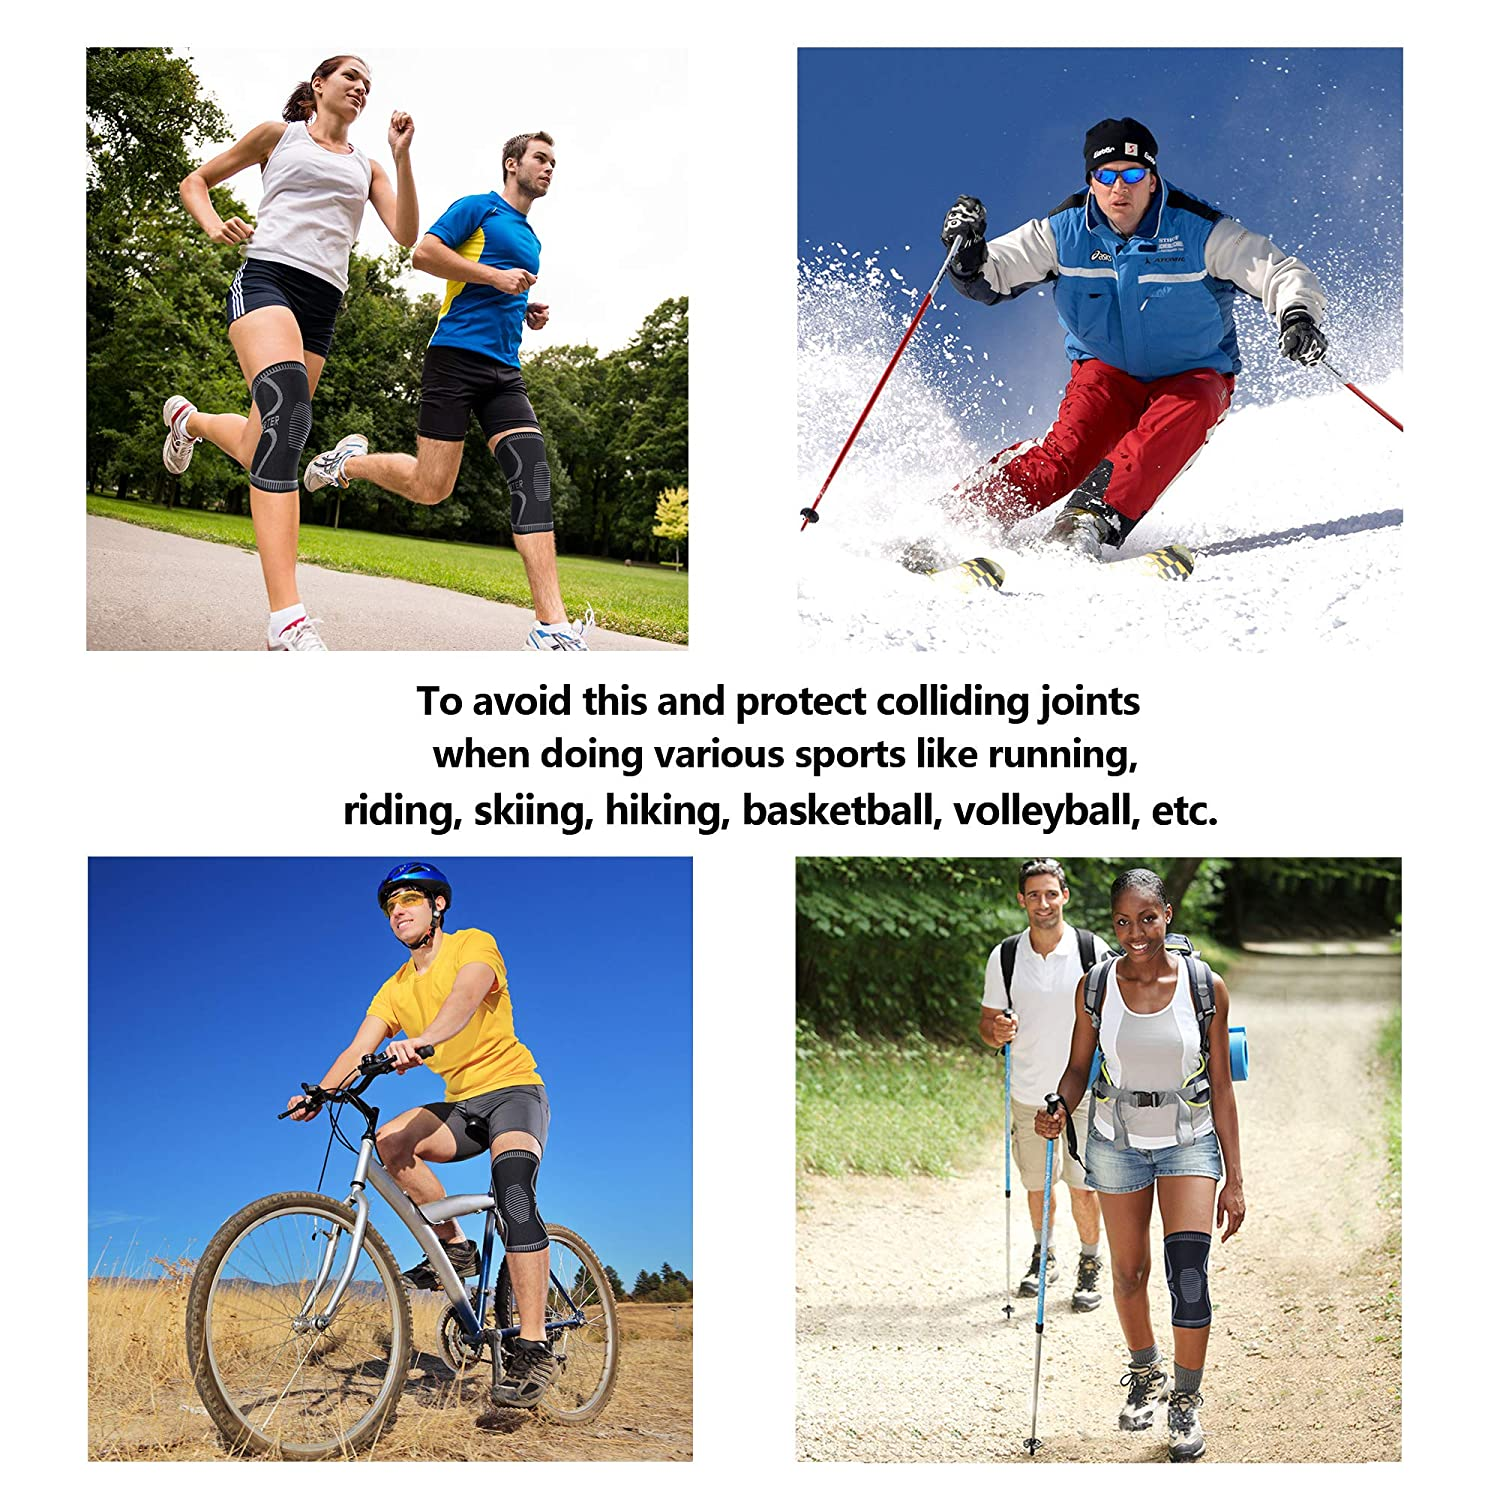 Arthritis and Injury Recovery Compression Sleeve Support Non-Slip for Running Pair Jogging for Joint Pain Relief BERTER Knee Brace for Men Women Hiking